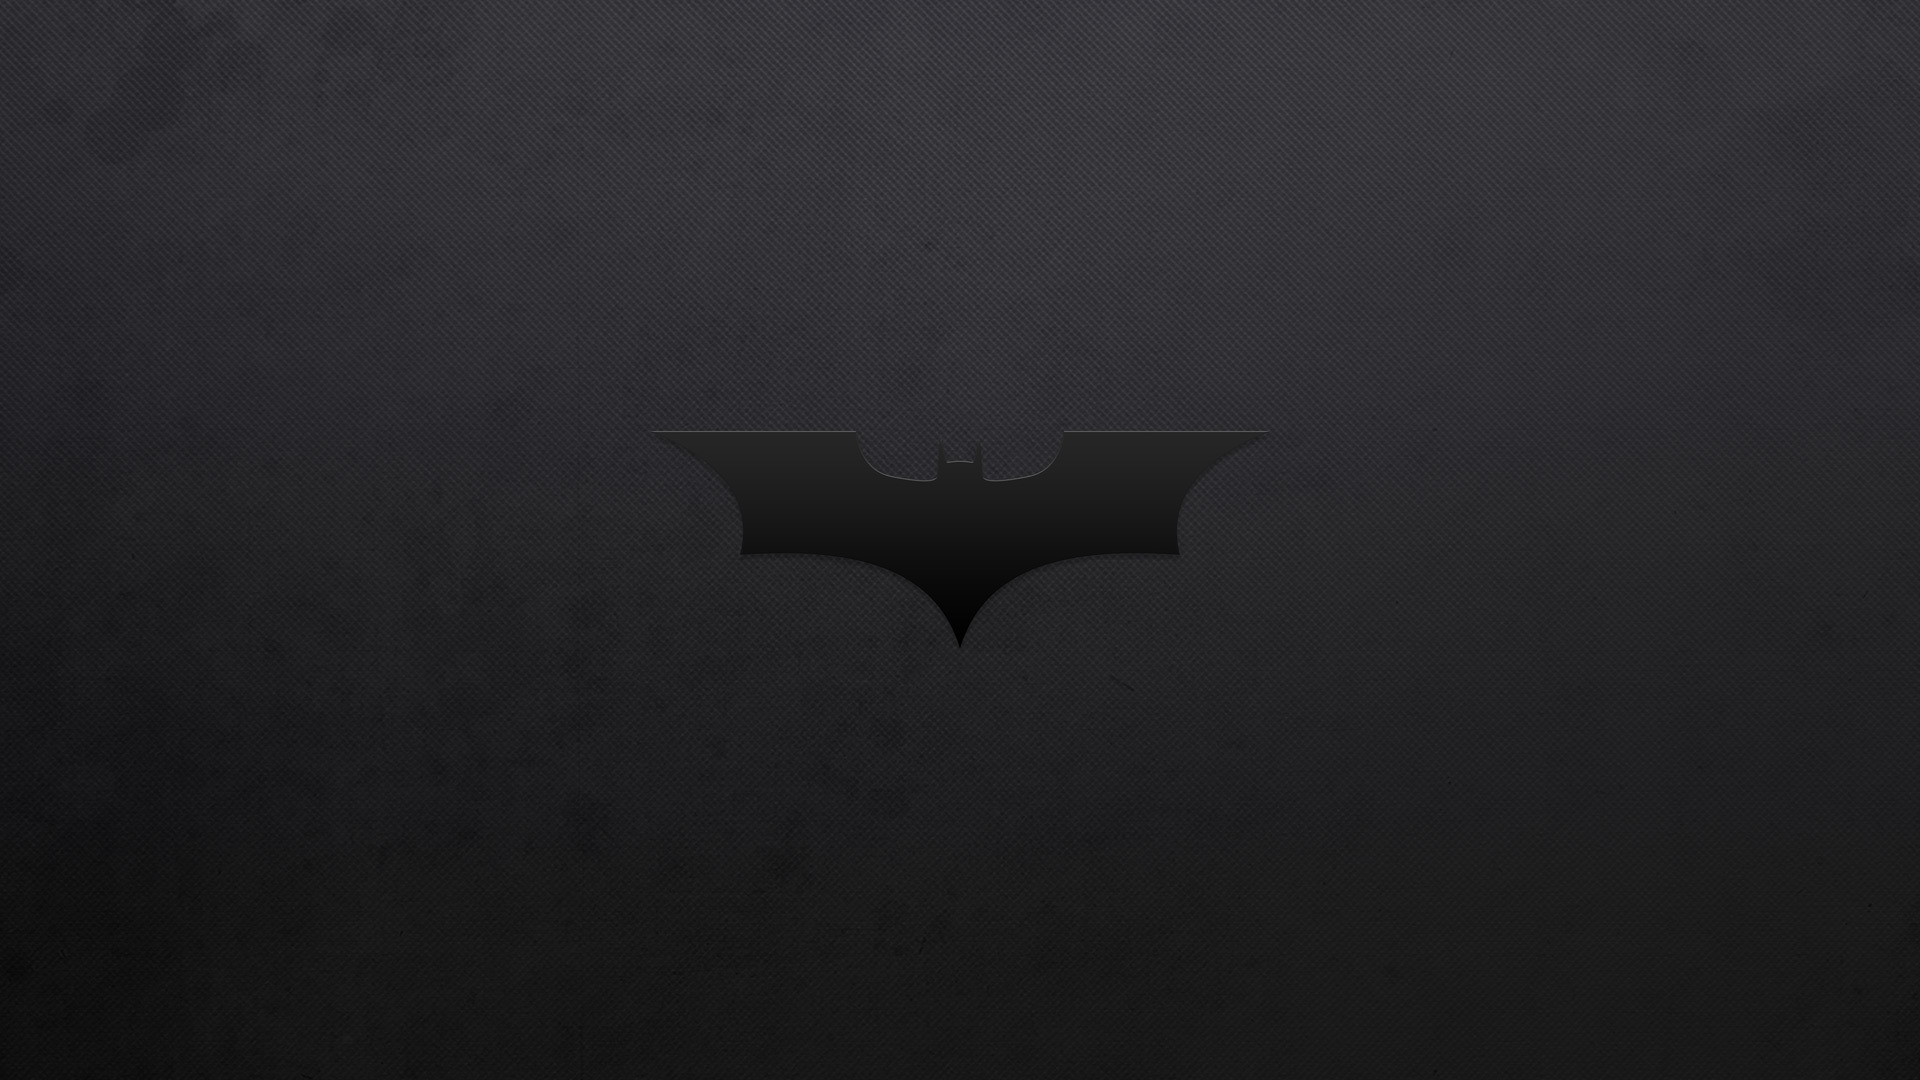 batman logo wallpaper 19